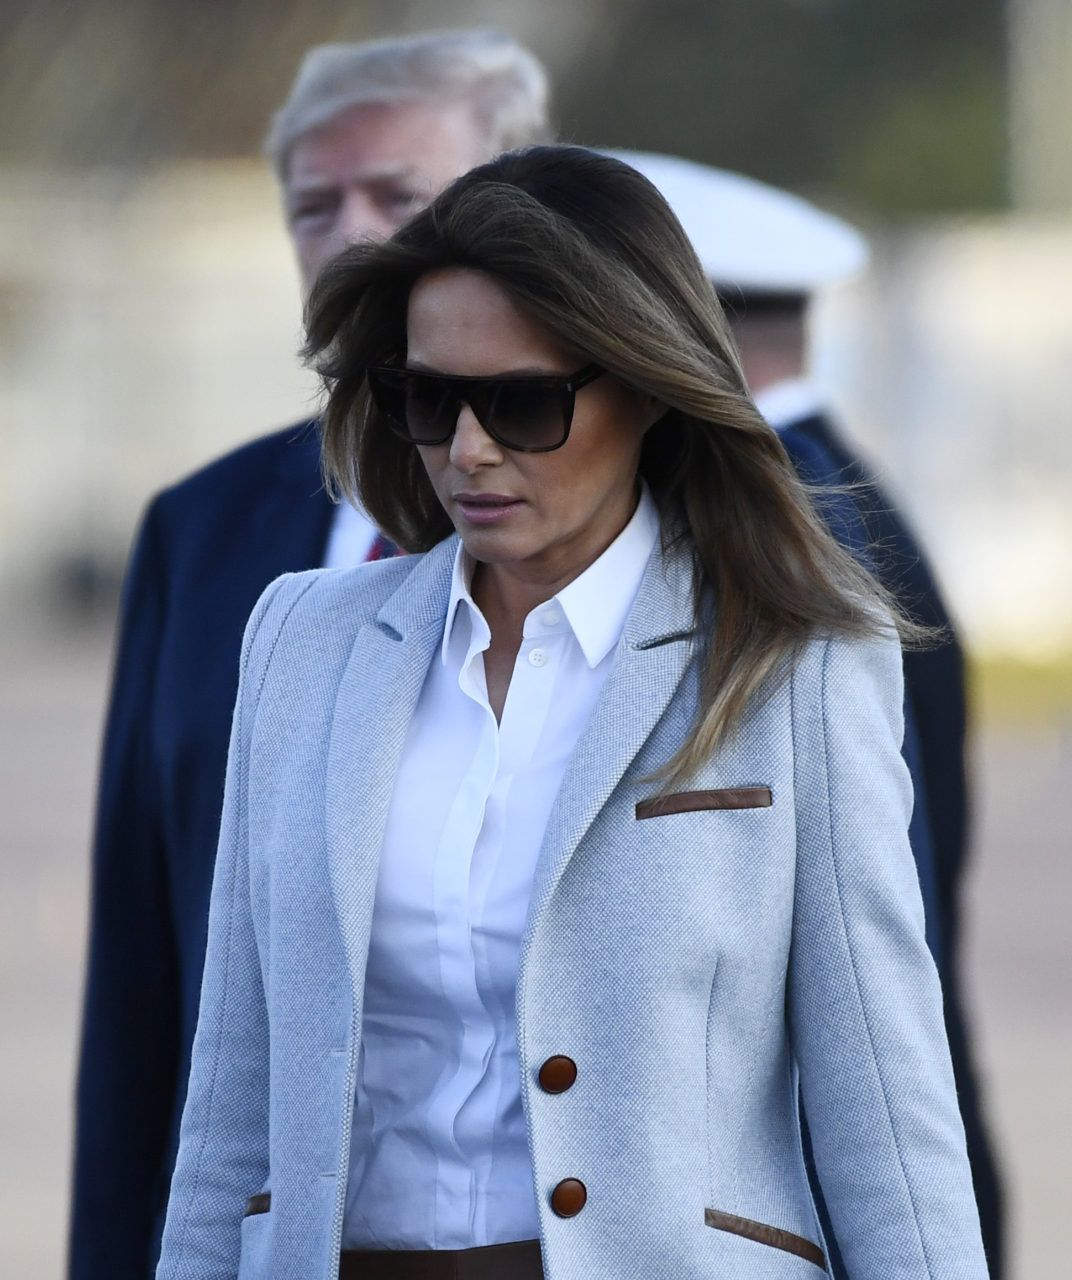 49f238013303 Fashion Notes: Melania Trump Stuns in Finland Wearing Ice Blue Coat by Emerging  American Designer